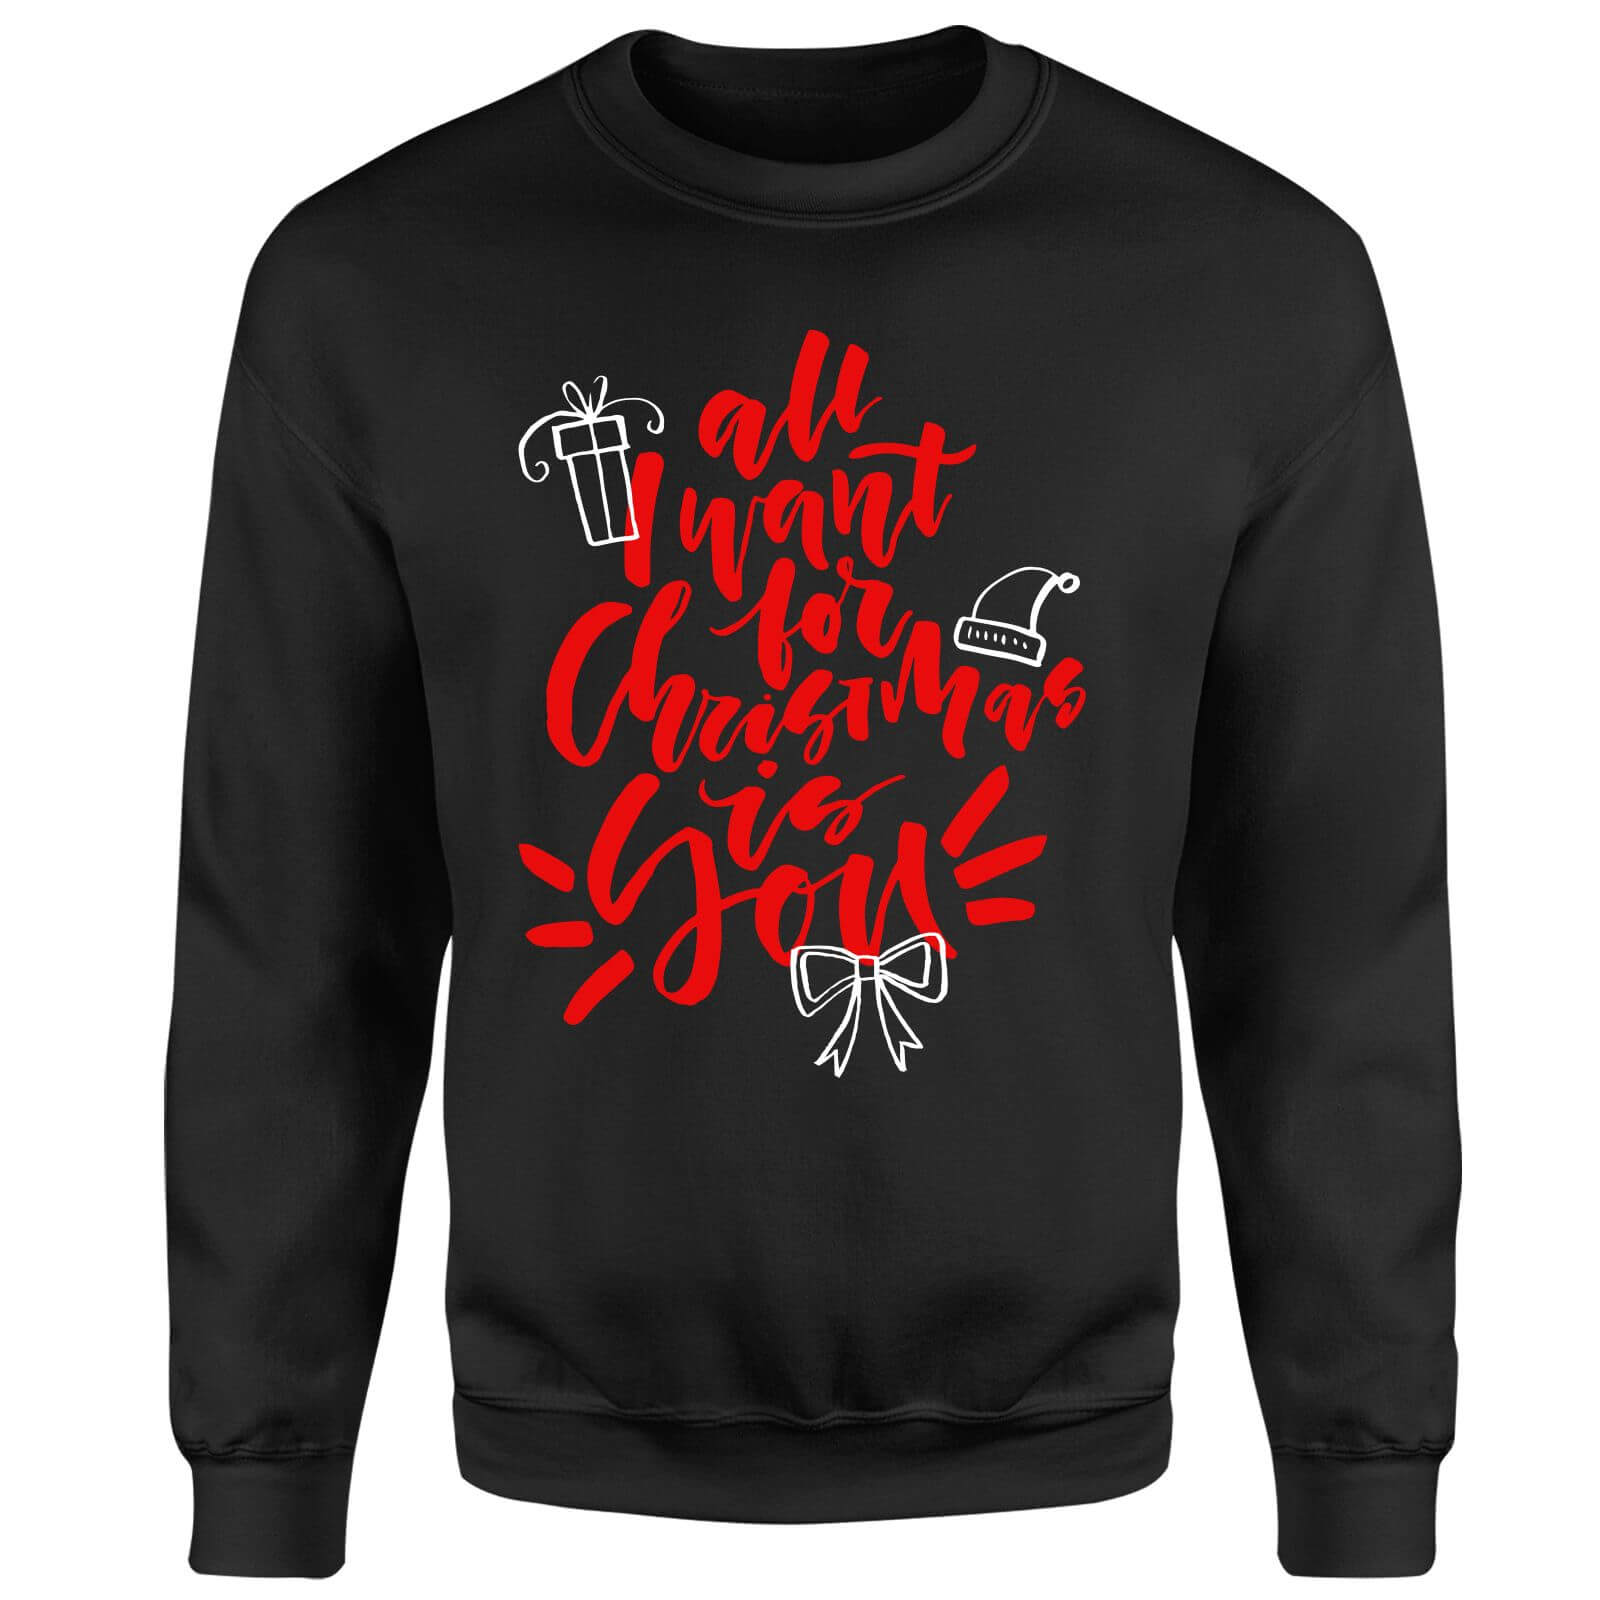 All i want for Christmas Sweatshirt - Black